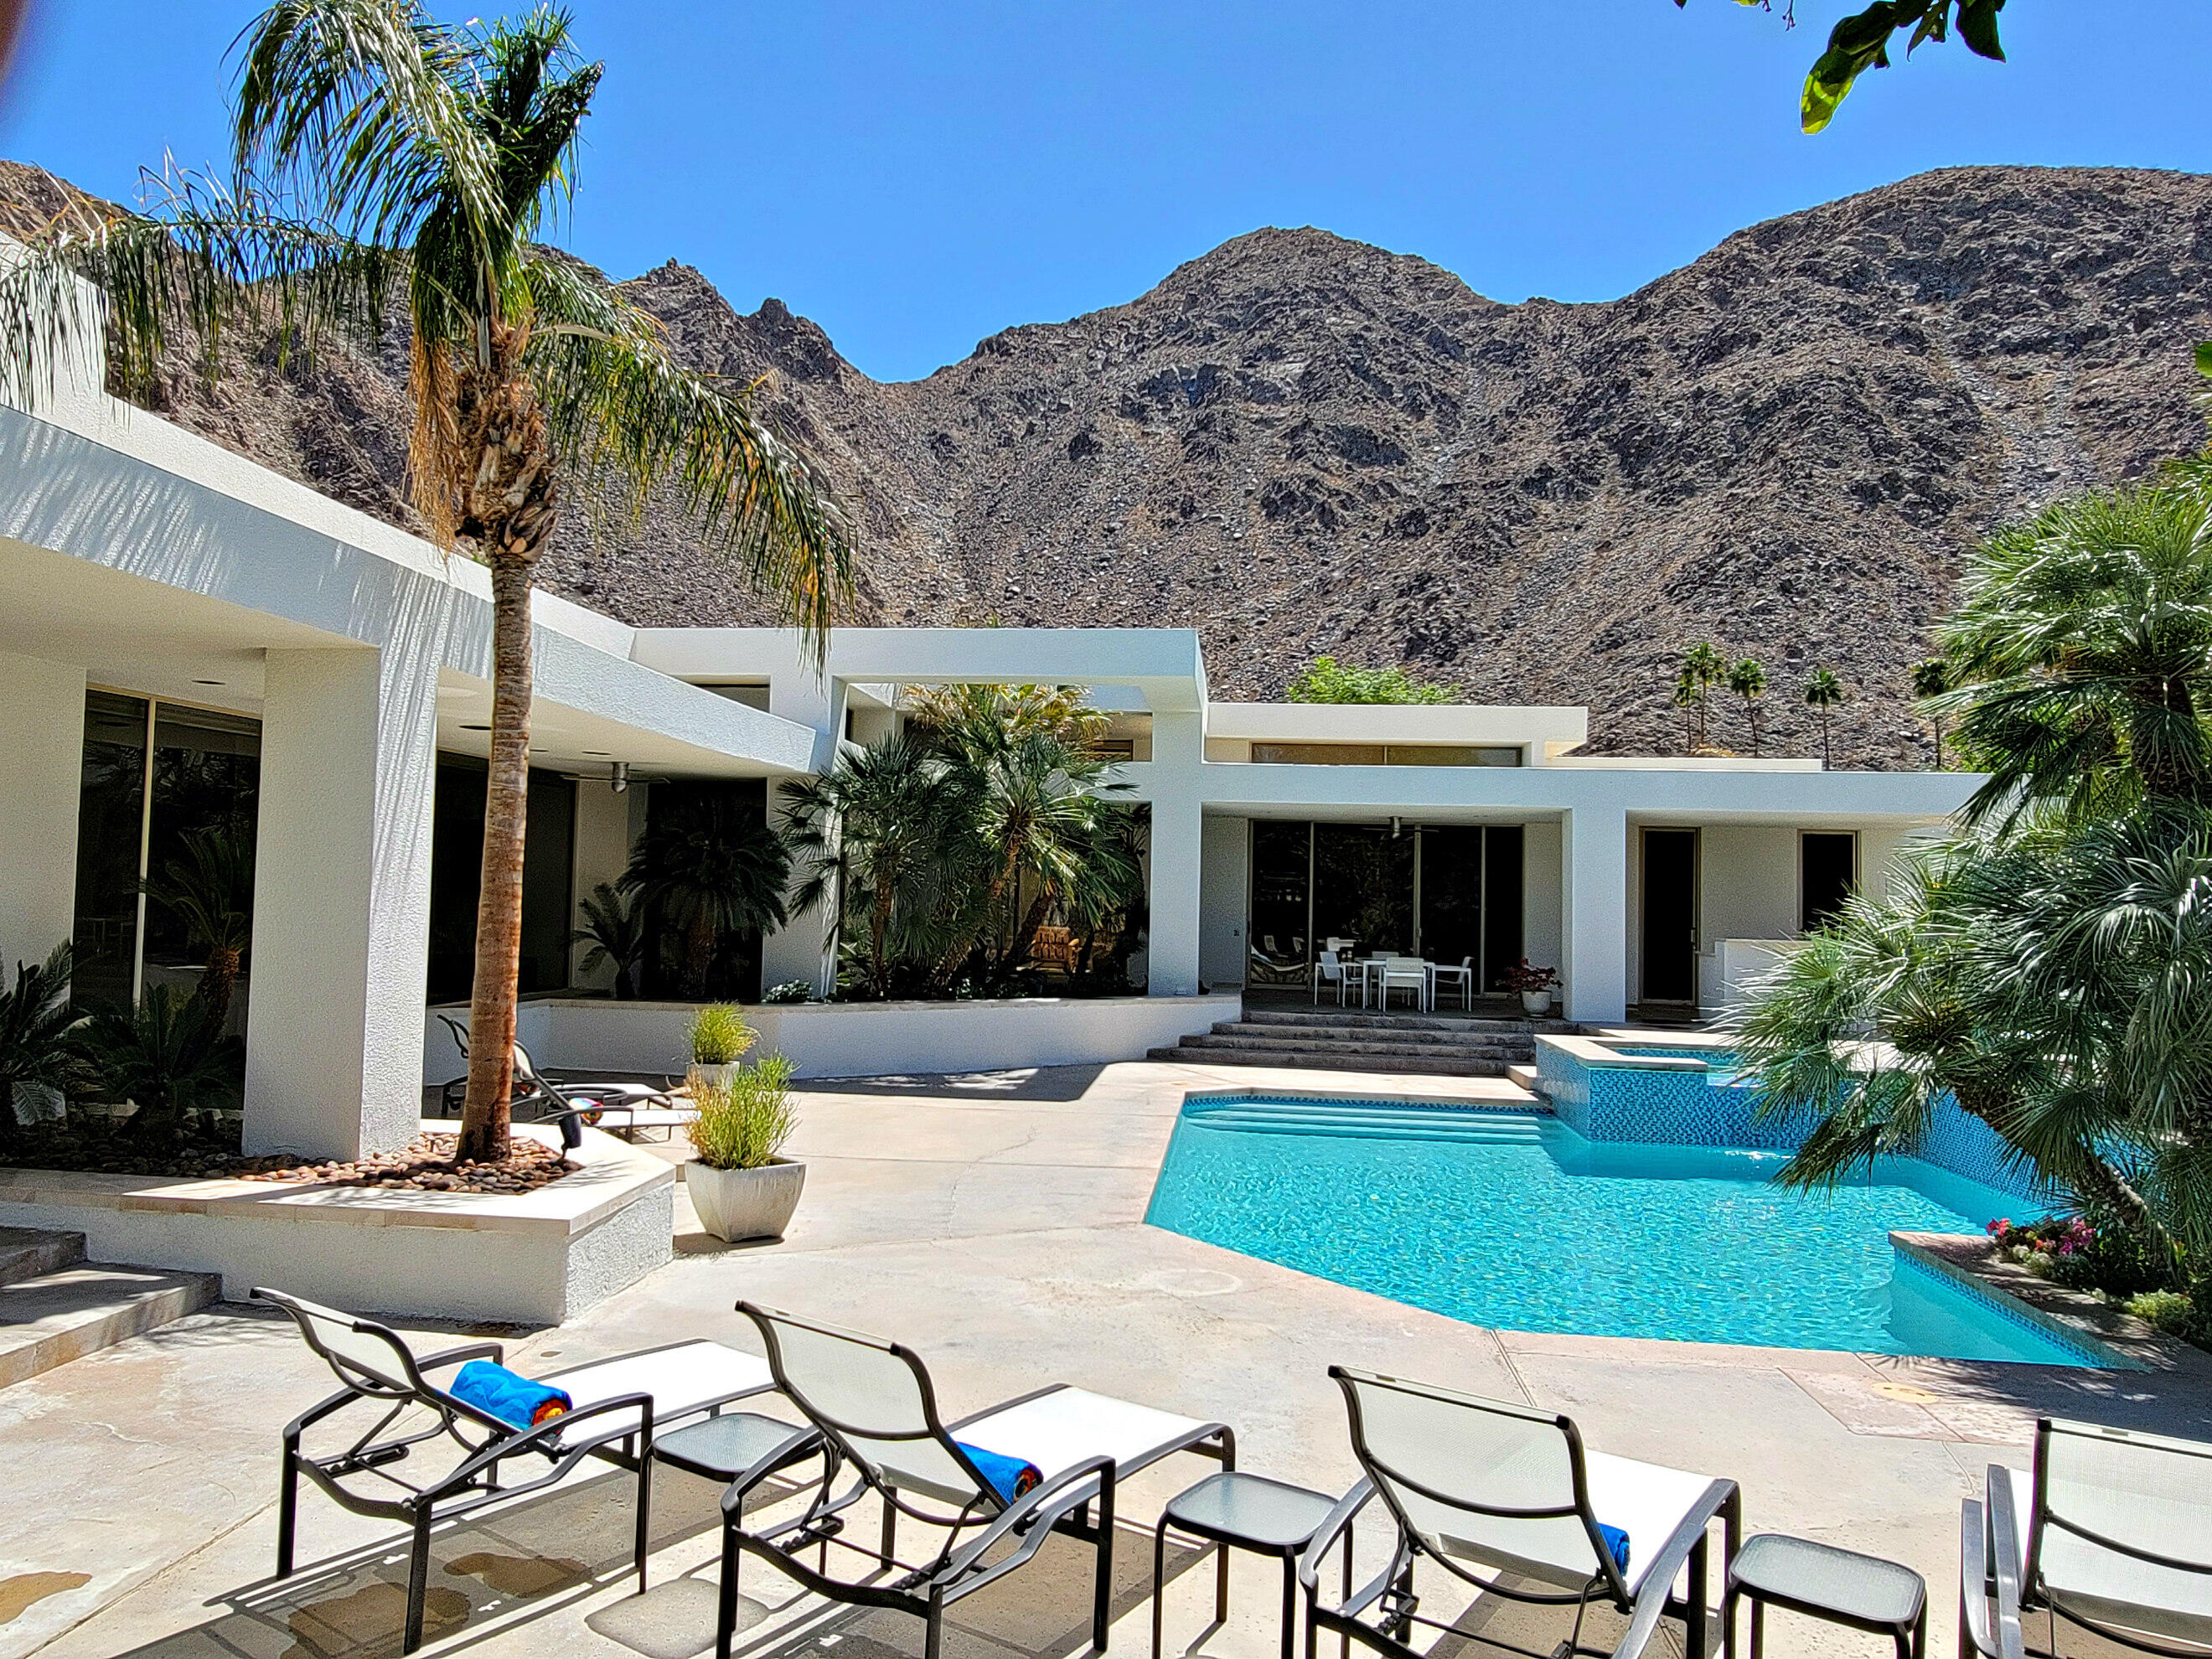 Nestled against the Rugged Santa Rosa Mountains behind the gates of the Prestigious Indian Wells Country Club you will find this Fabulous  Architectural Masterpiece.  Custom Designed for Celebrity Client, Tenor, Enzo Stuarti,   ''Here I find Peace of Mind with Friends, a little Pasta and a glass of wine.''    Breathtaking Entrance welcomes you, Resplendent with rare Crema Europa Limestone Floors reflecting natural light from walls of glass and 15 foot high towering ceilings.  Seemingly endless touches of imported Birds Eye Maple enhance the overall richness.   Large Chefs, eat-in, Island Kitchen with all high end European Gaggenau Appliances. Conveniently positioned Formal Dining Room highlights  the homes wonderful relationship with the outdoors.  Light and Airey exuding a feeling of uncomplicated Palatial  Elegance.  The Master Suite alone is something to behold. with Huge Walk in Closets, Large sunken tub Generous His and Hers Vanities. Nearly half an acre of Lush Green Seclusion , Newly refinished Pebble Tech Pool and Spa basking in the shadow of the Santa Rosa mountains.  Two Separate Casitas each with full baths, and their own Private Patios.  Two- yes 2 Car Garages,+Golf Cart Garage. 4 Newer Trane A/C's. Recently redone roof also adds to the amazing value of this fine Residence. Created by Award winning Desert Architect (Vintage Club) Patrick Evan Sheehy.  Built by local Quality Builder Chuck Strother and finished by Feng Shui Master Kathleen Turnpane. NO HOA FEE's